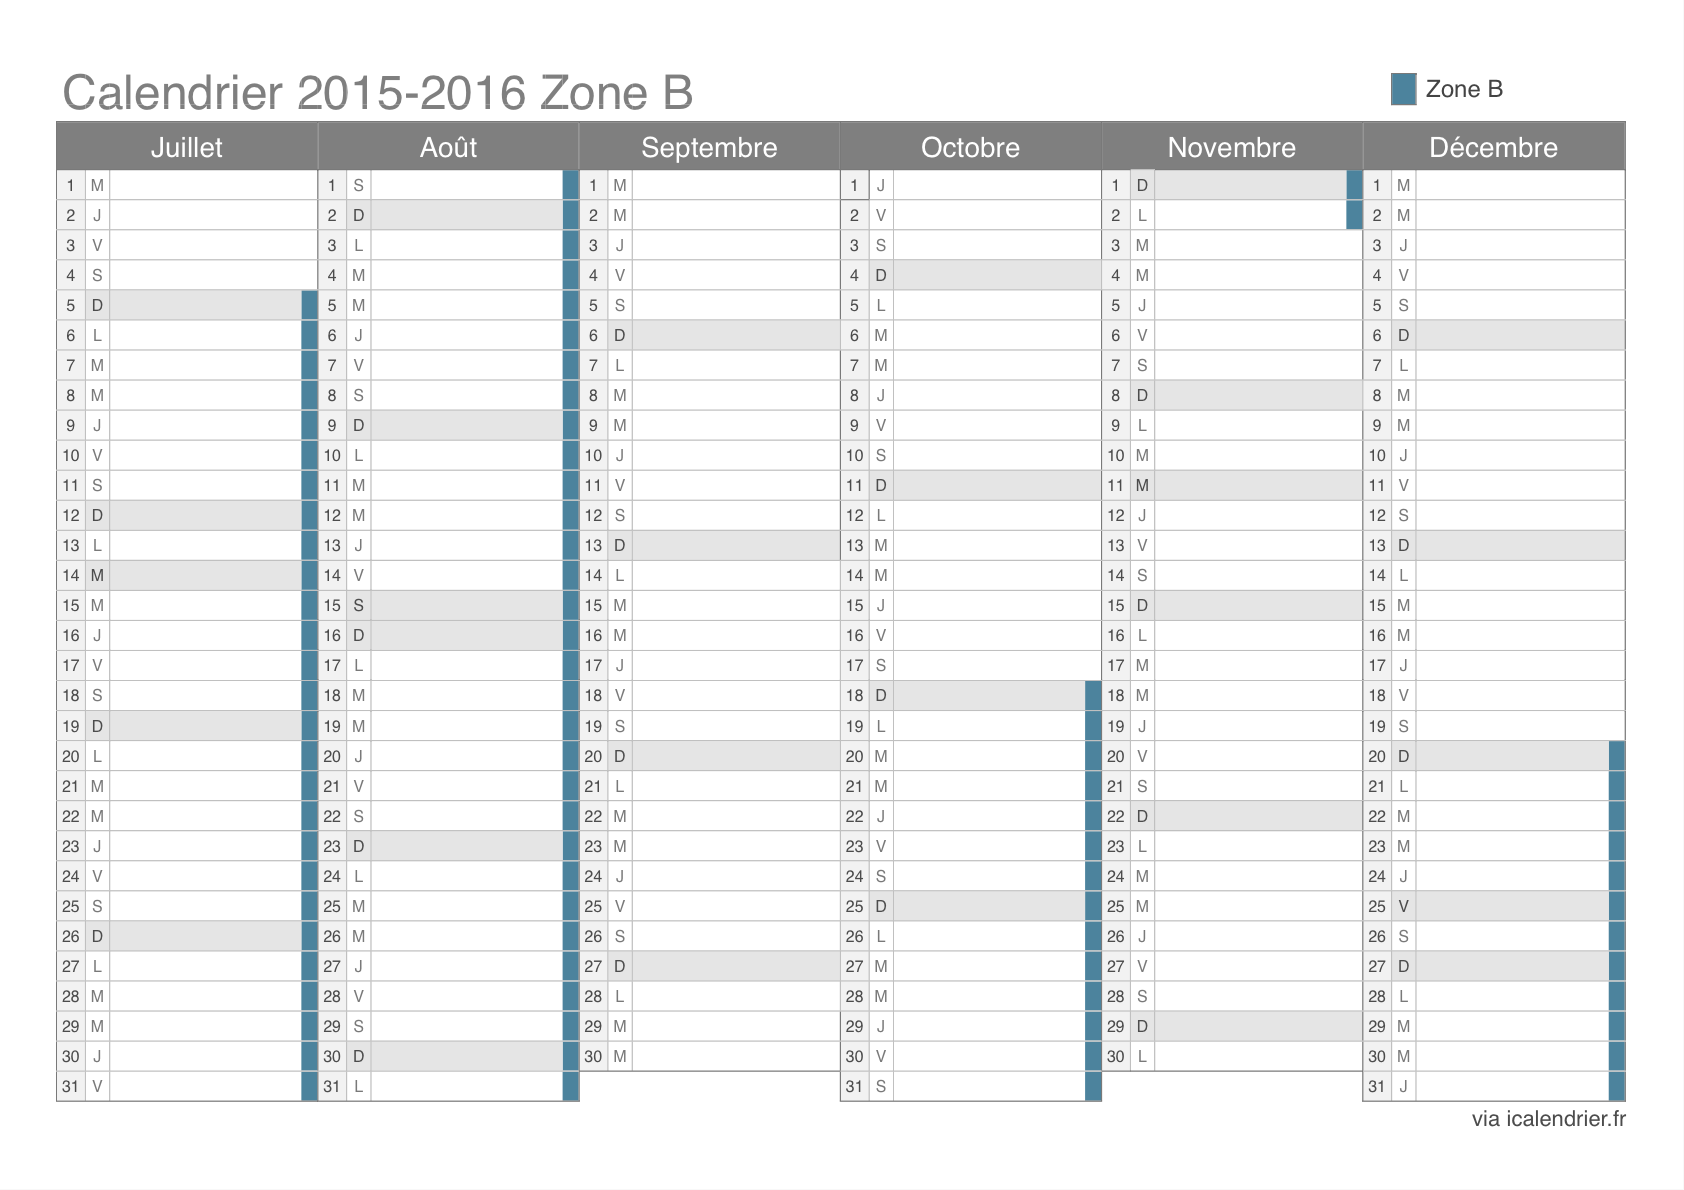 vacances scolaires 2015 2016 zone b calendrier et dates. Black Bedroom Furniture Sets. Home Design Ideas